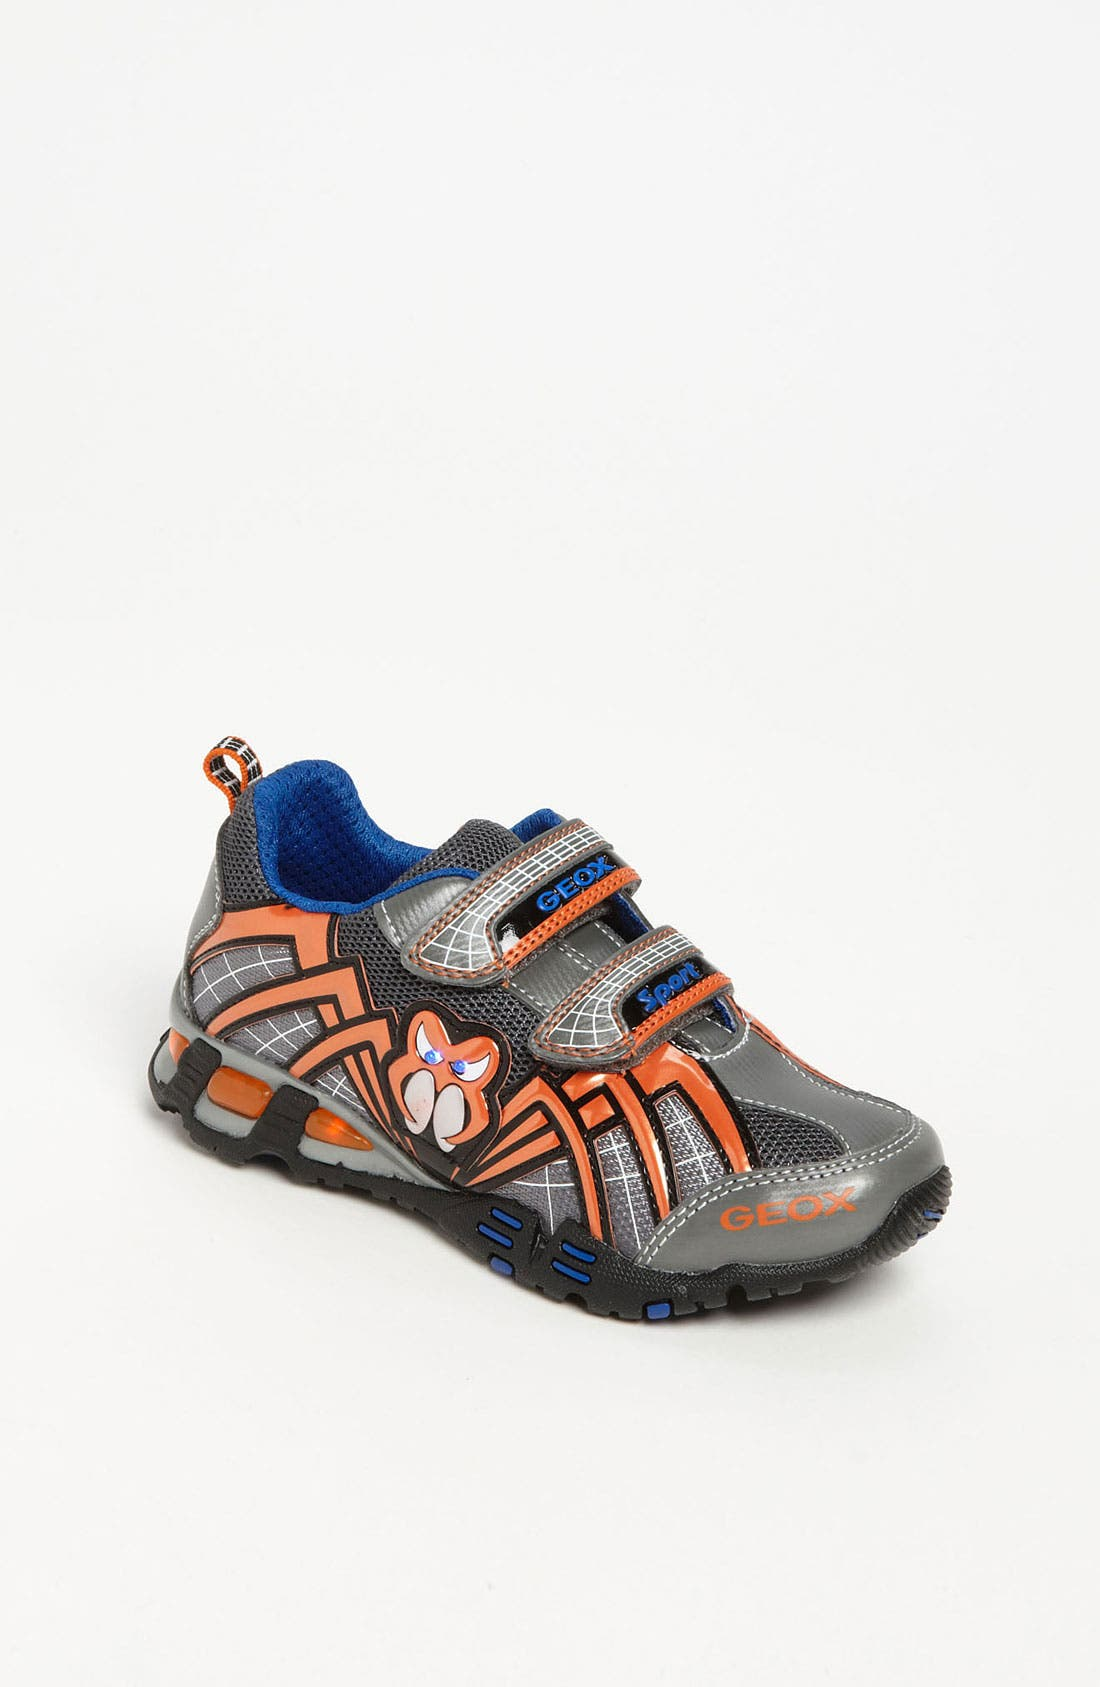 Alternate Image 1 Selected - Geox 'J Eclipse' Sneaker (Toddler, Little Kid & Big Kid)